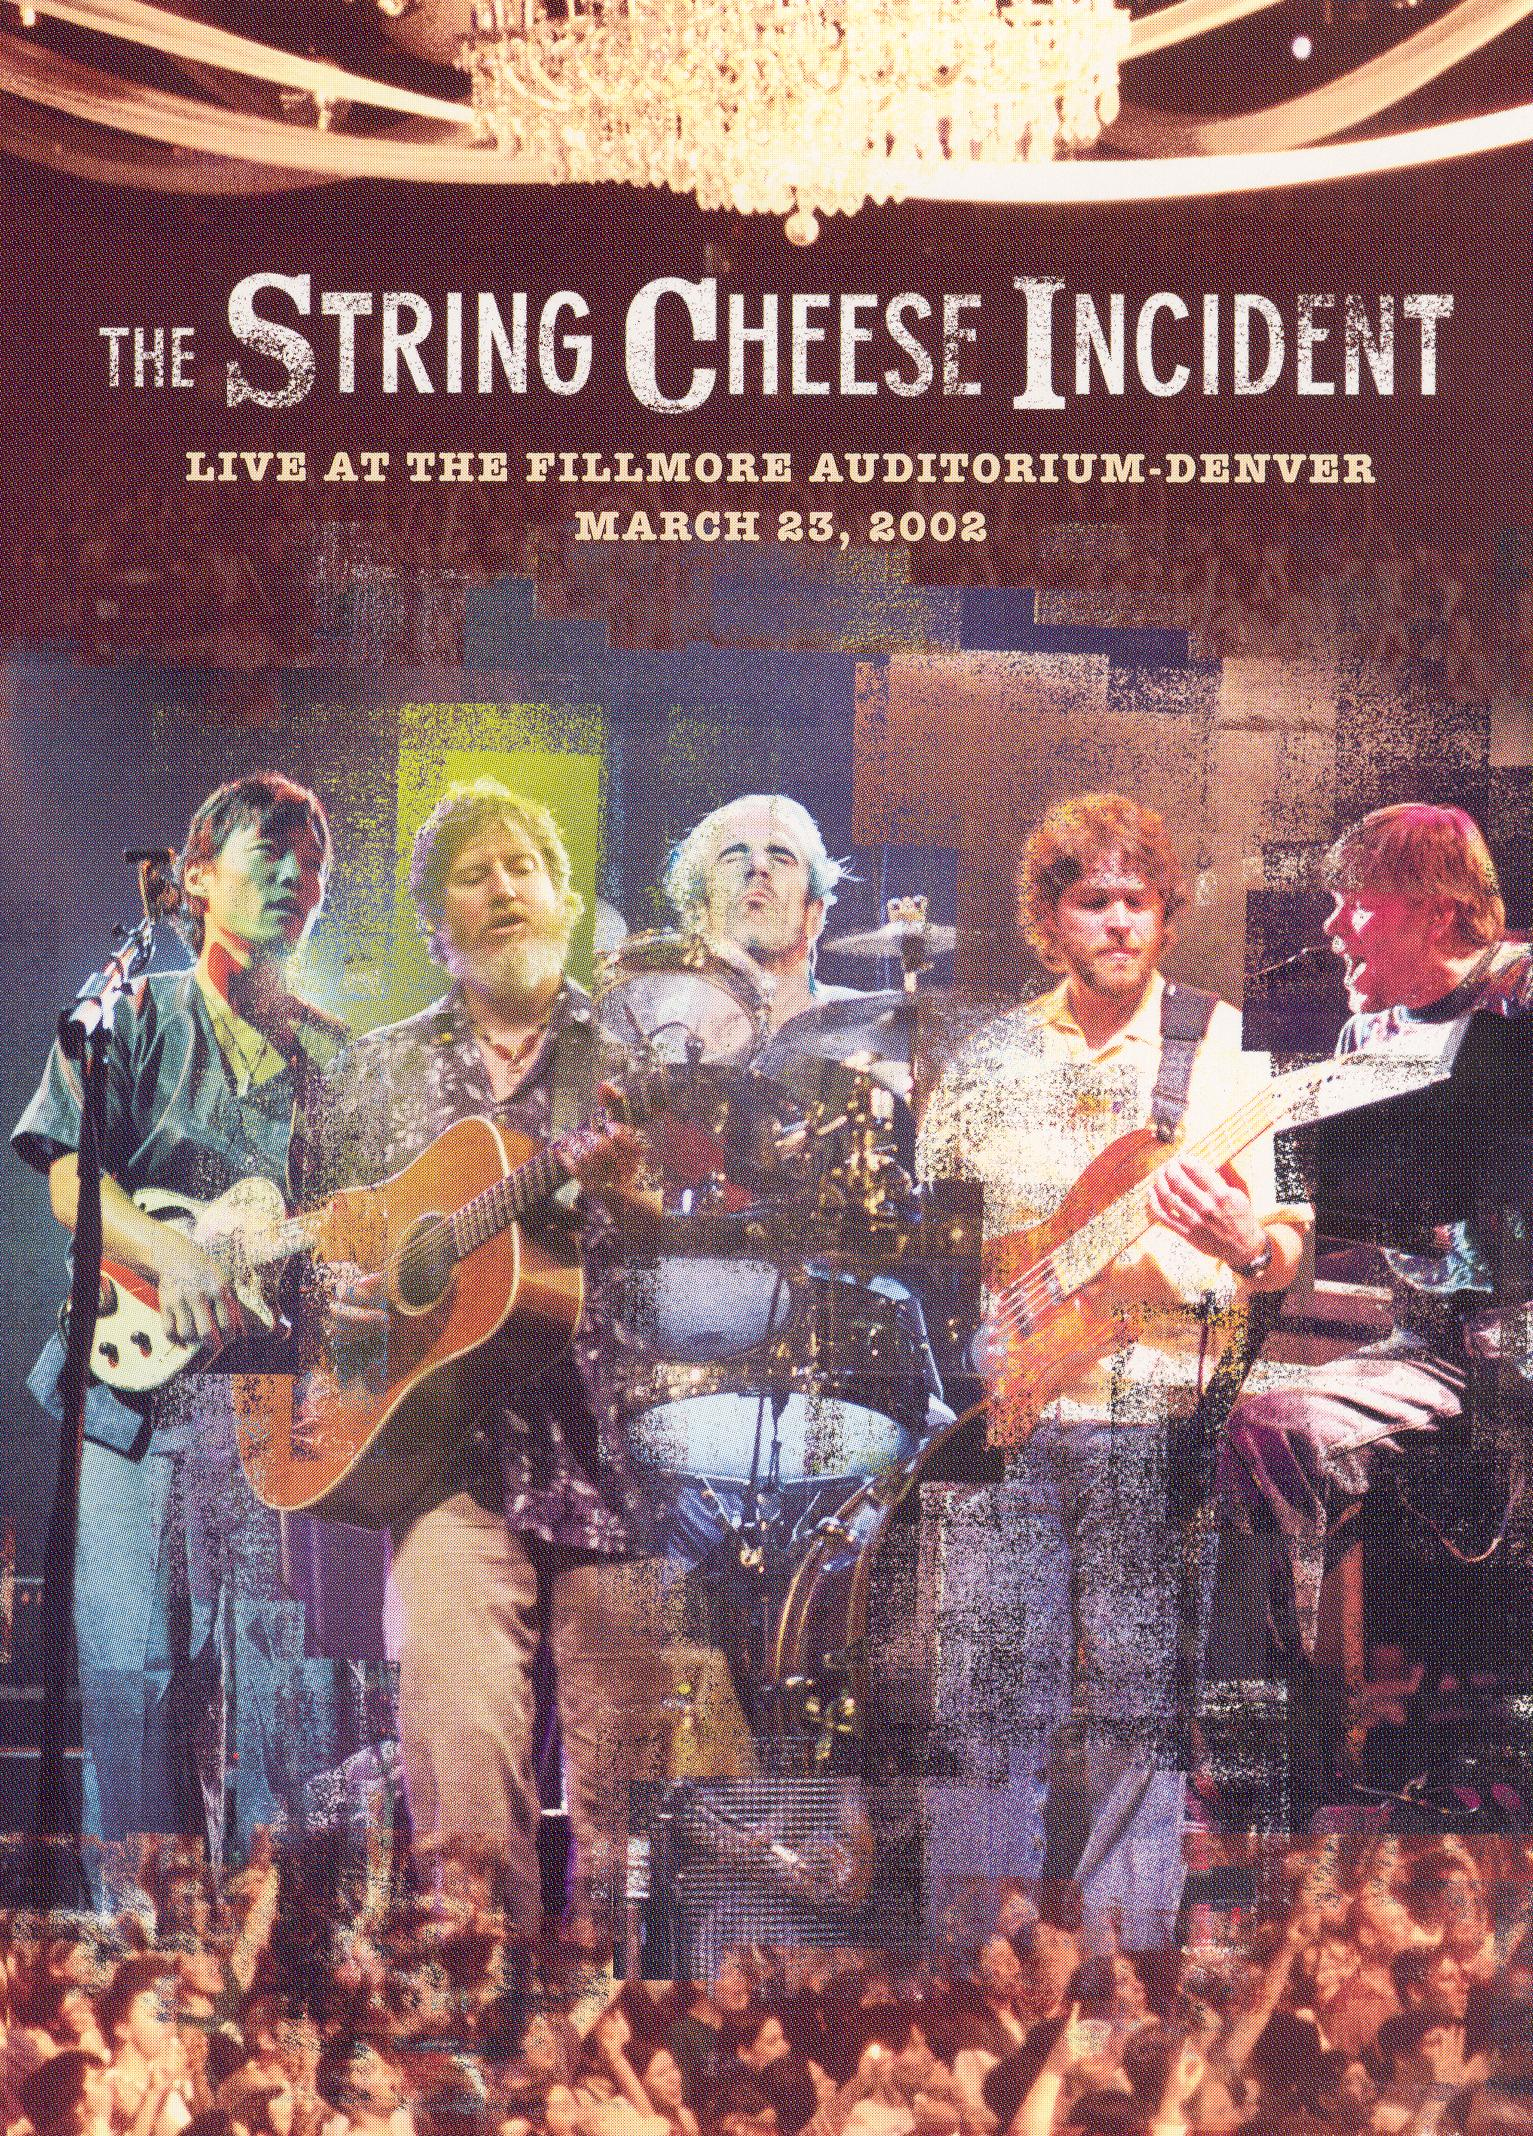 The String Cheese Incident: Live at the Fillmore